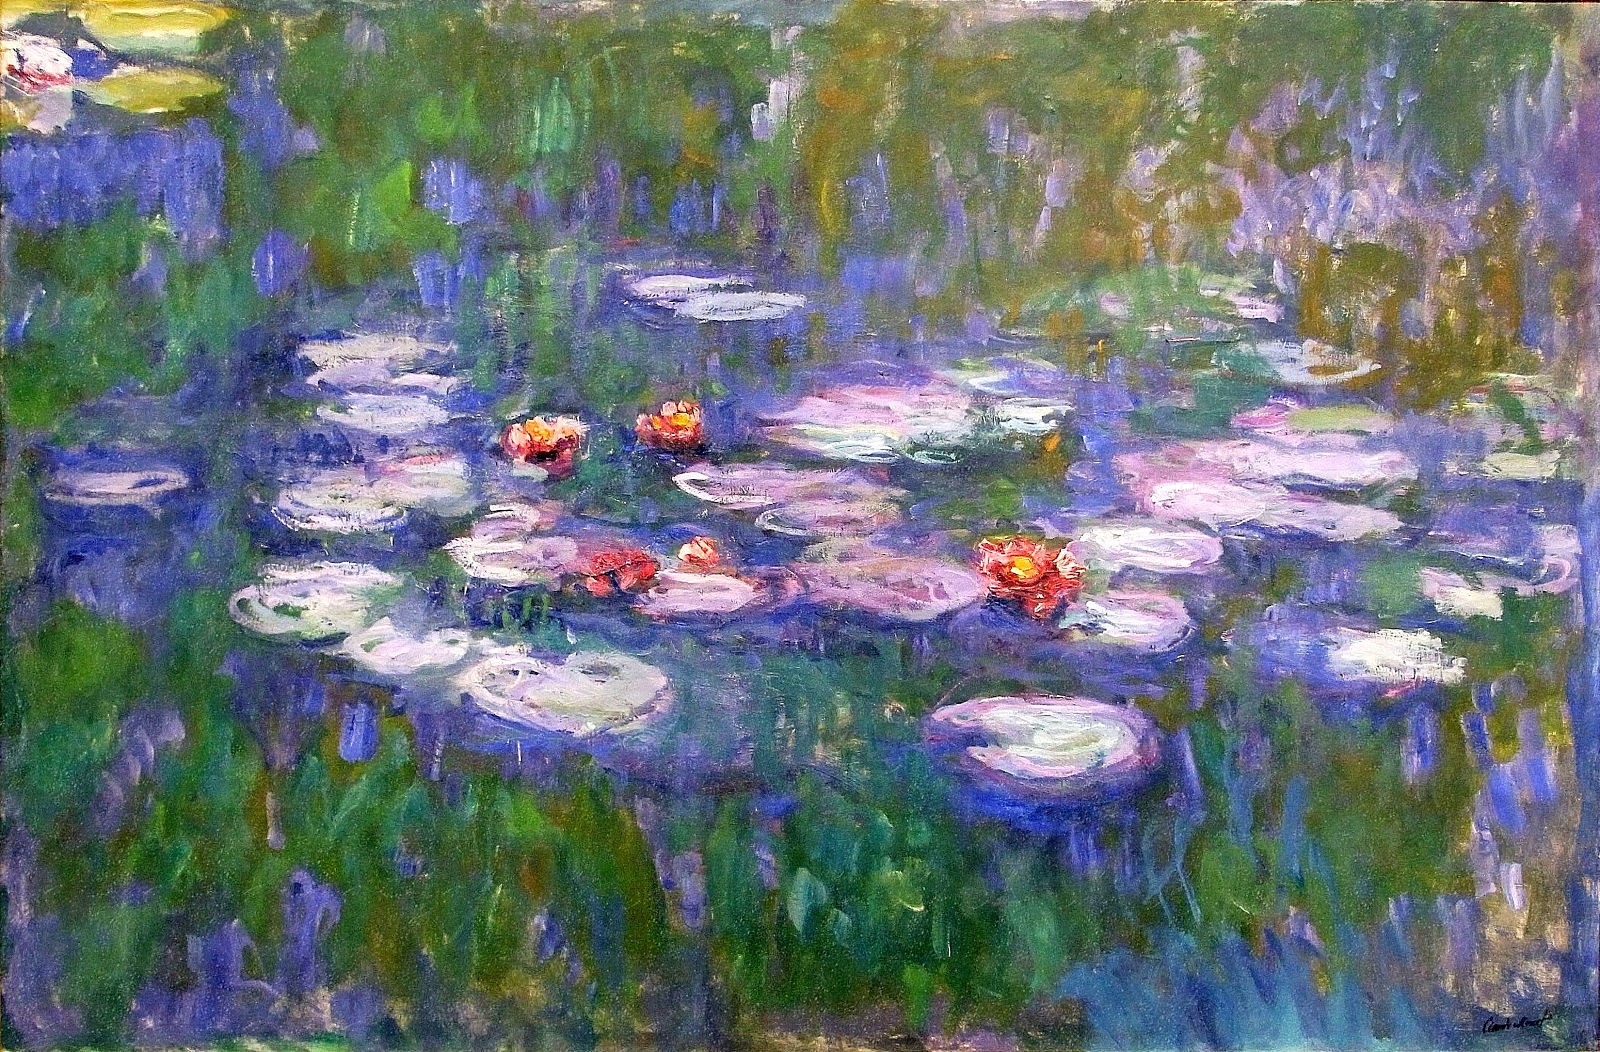 Journey to the time of the Impressionists.